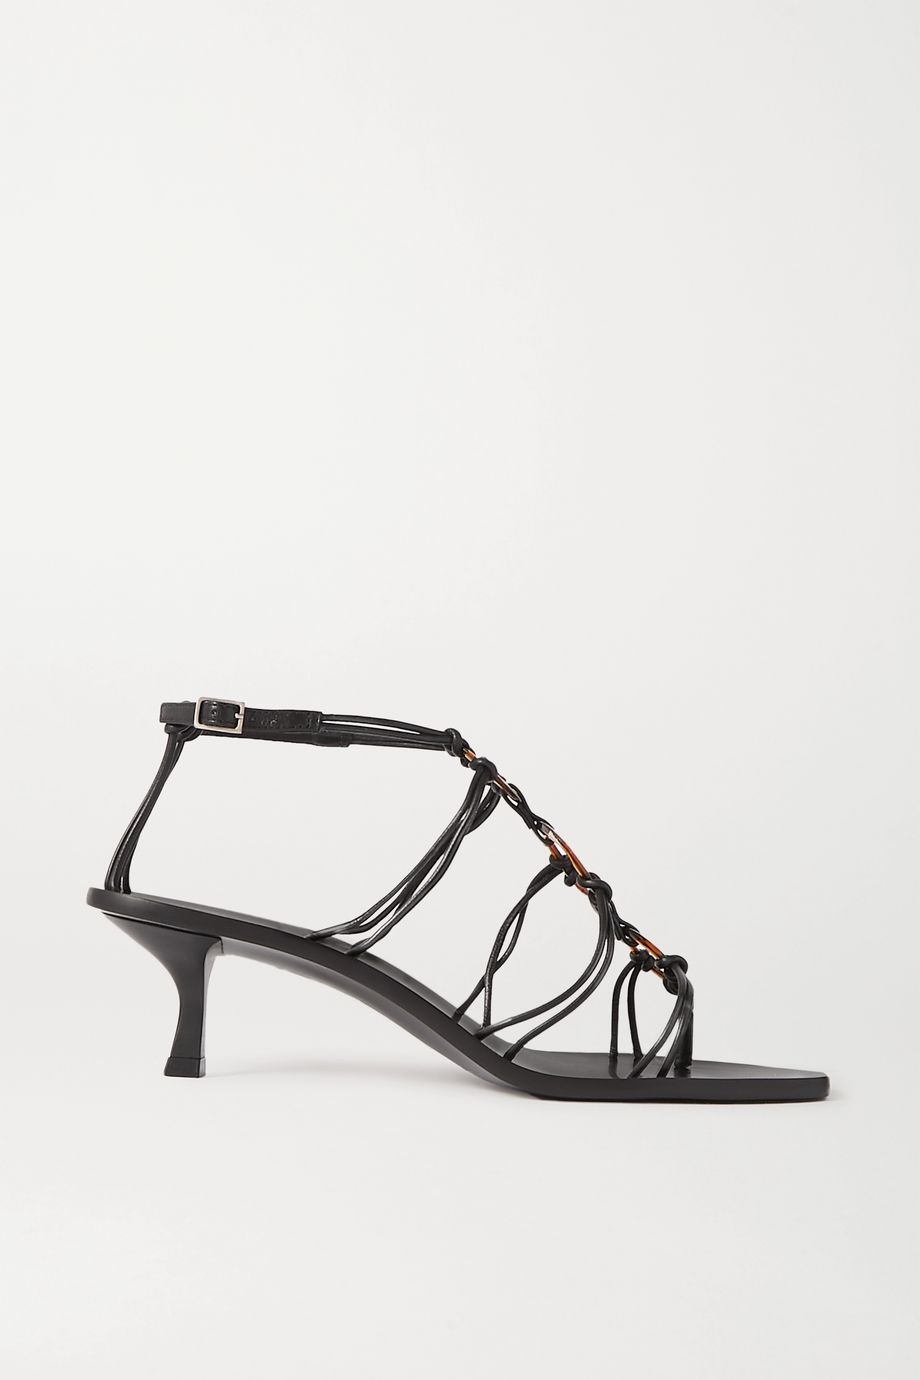 Cult Gaia Ziba embellished leather sandals